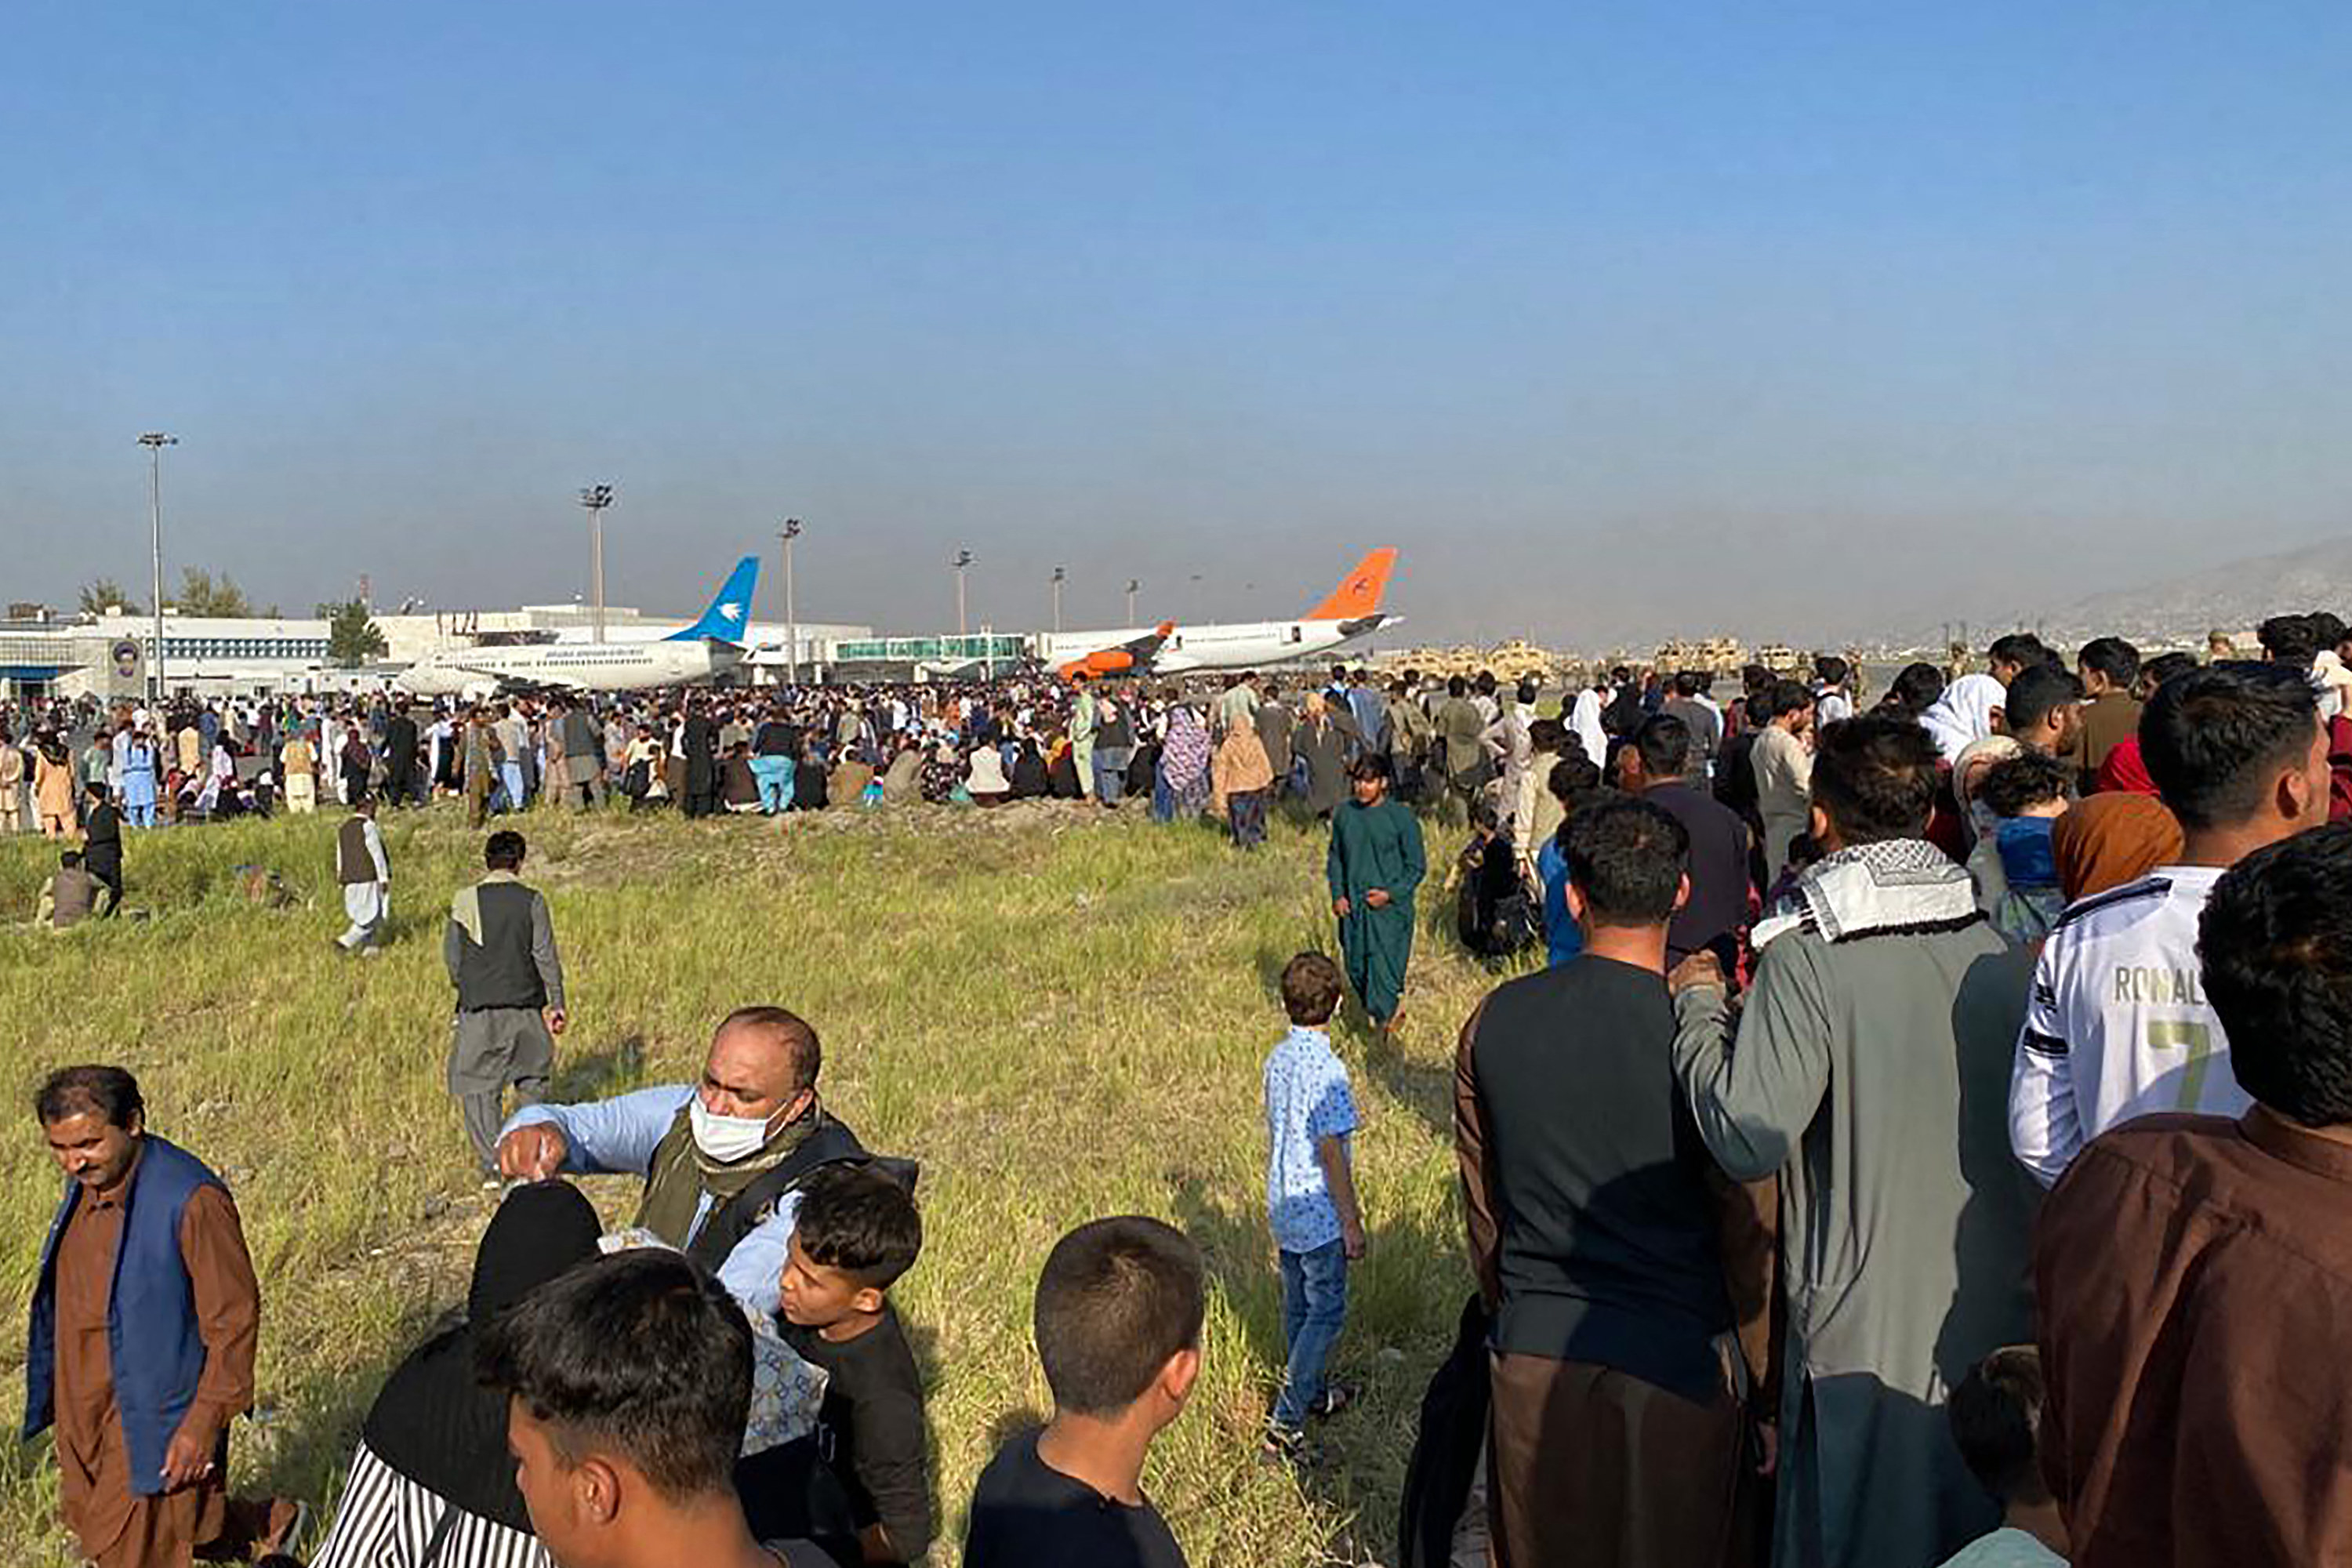 Hundreds crowd the grass and tarmac at the airport